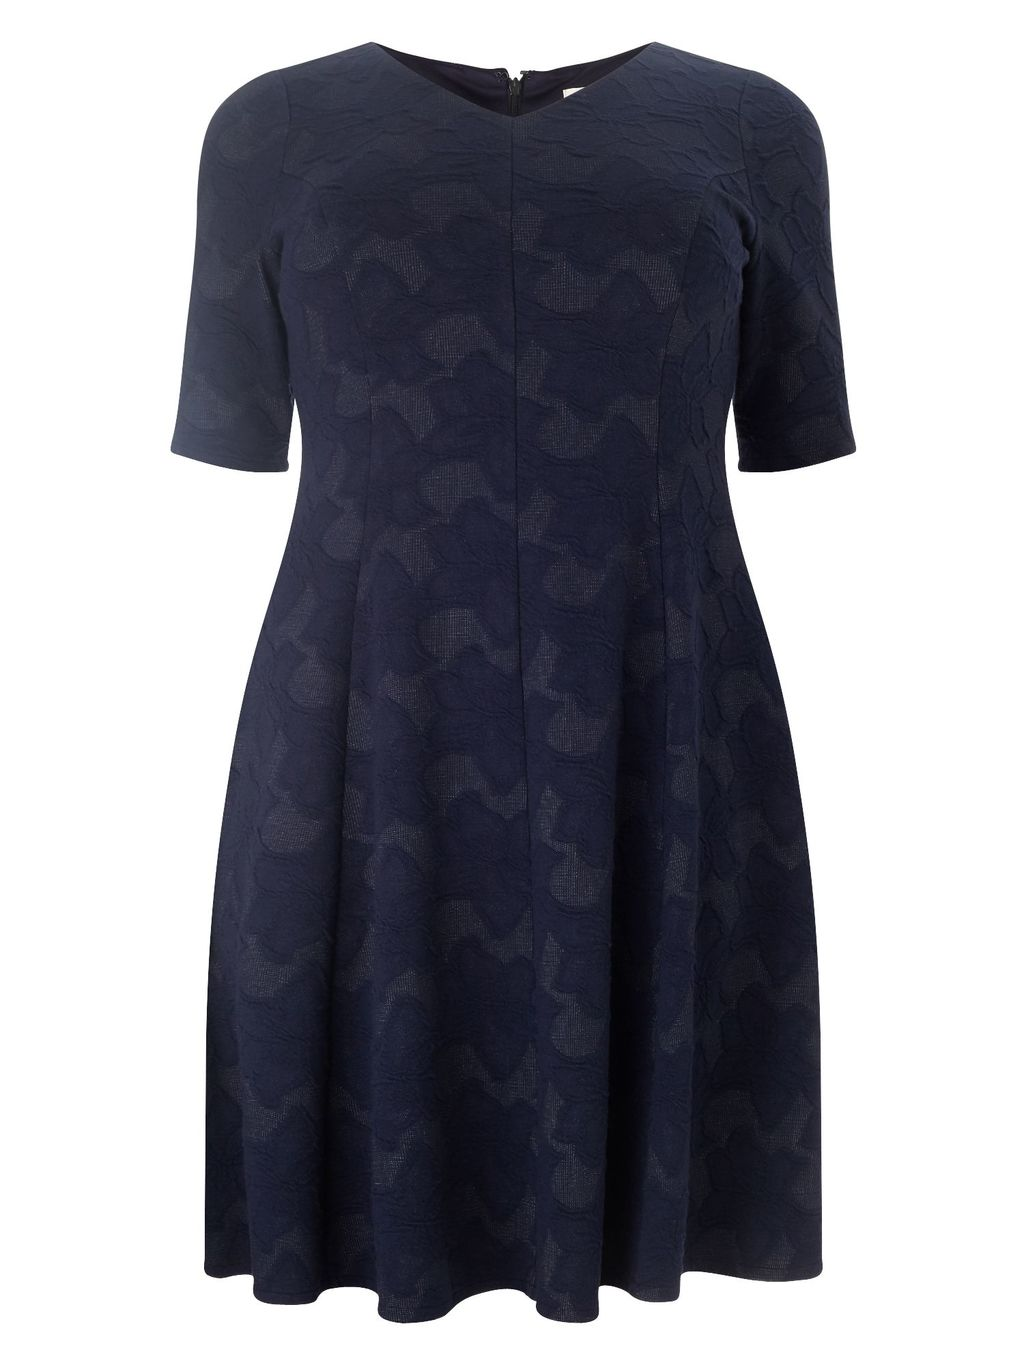 Debbie Dress, Navy - style: shift; neckline: v-neck; predominant colour: navy; occasions: casual, creative work; length: just above the knee; fit: soft a-line; fibres: cotton - mix; sleeve length: short sleeve; sleeve style: standard; pattern type: fabric; pattern size: standard; pattern: patterned/print; texture group: jersey - stretchy/drapey; season: s/s 2016; wardrobe: highlight